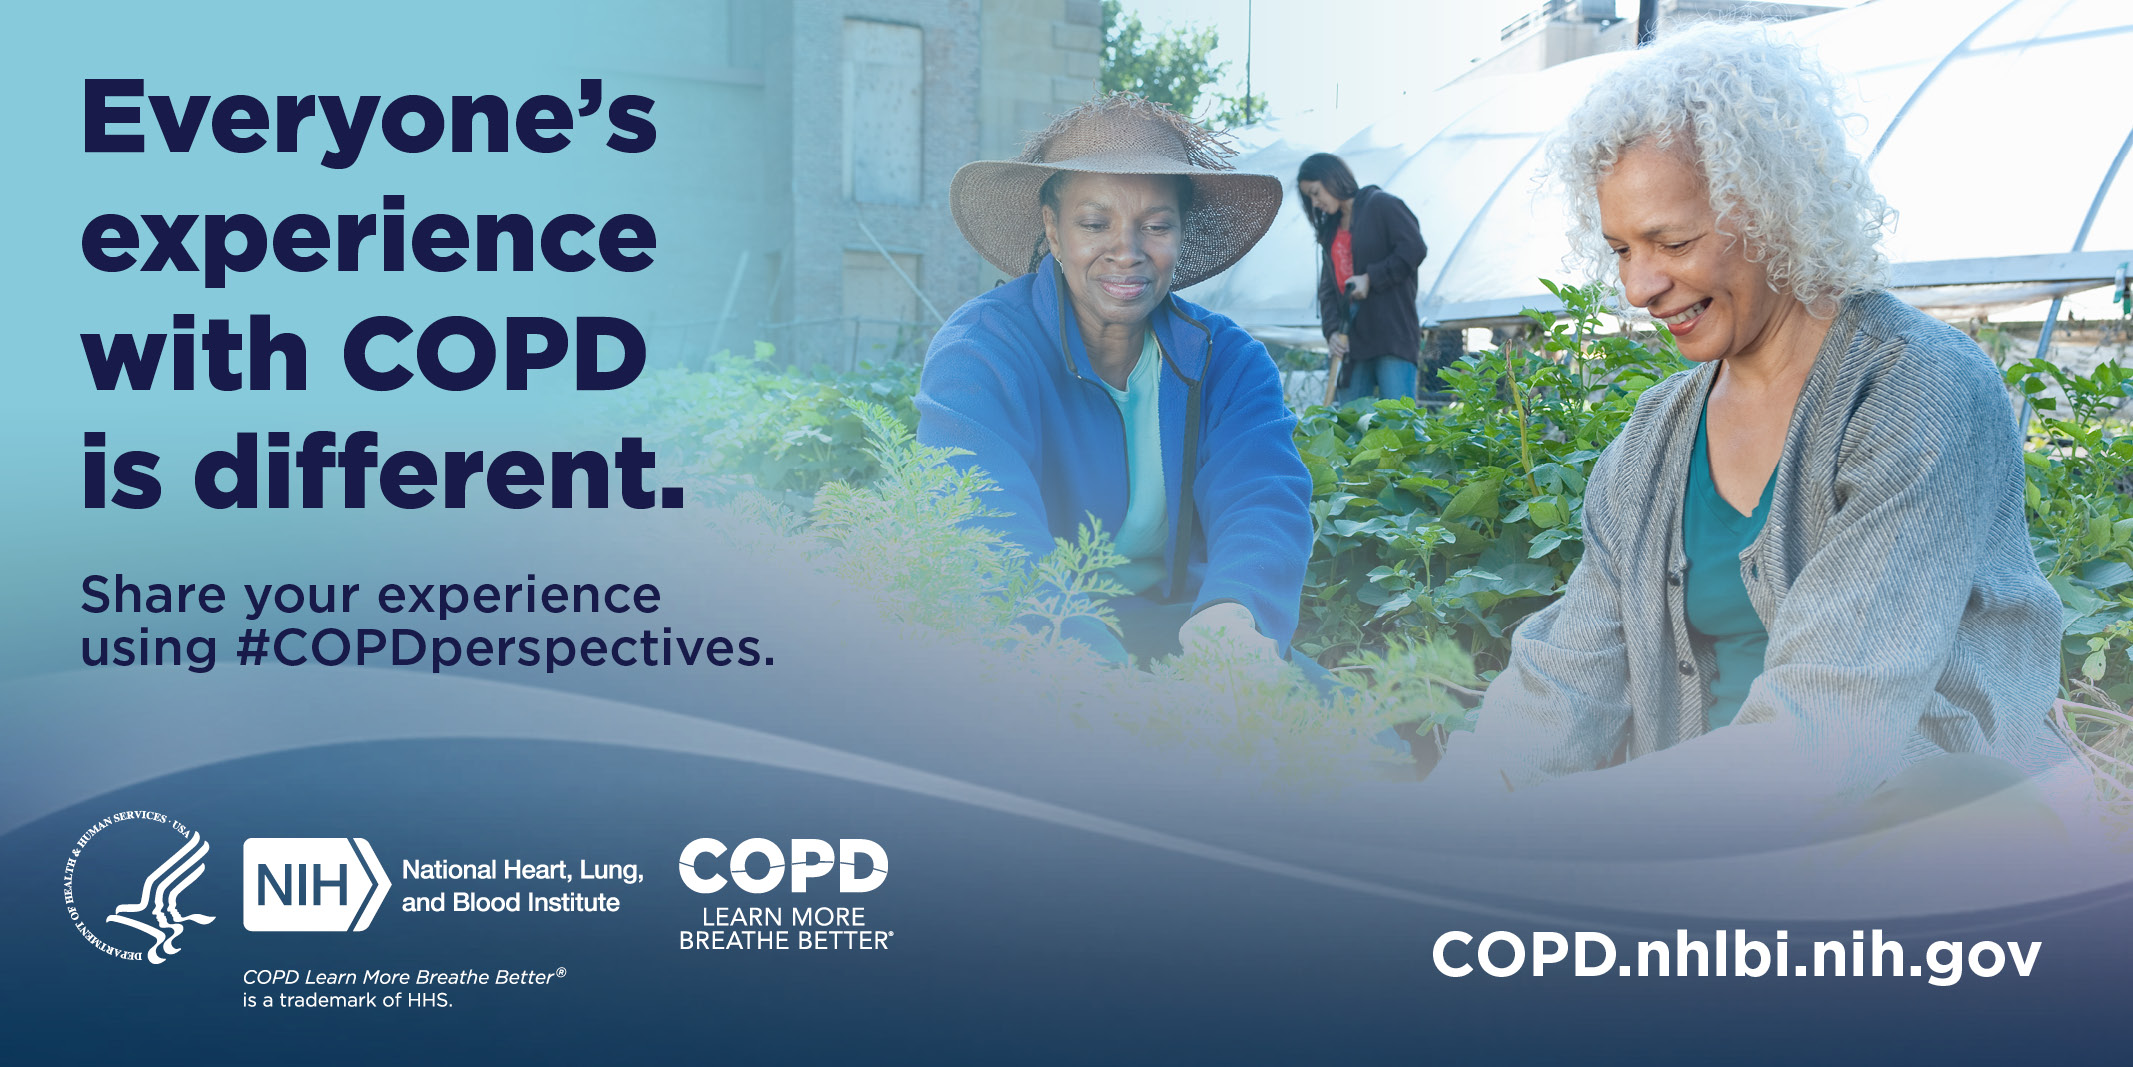 Image with text: Everyone's experience with COPD is different. #COPDjourney. COPD.nhlbi.nih.gov.